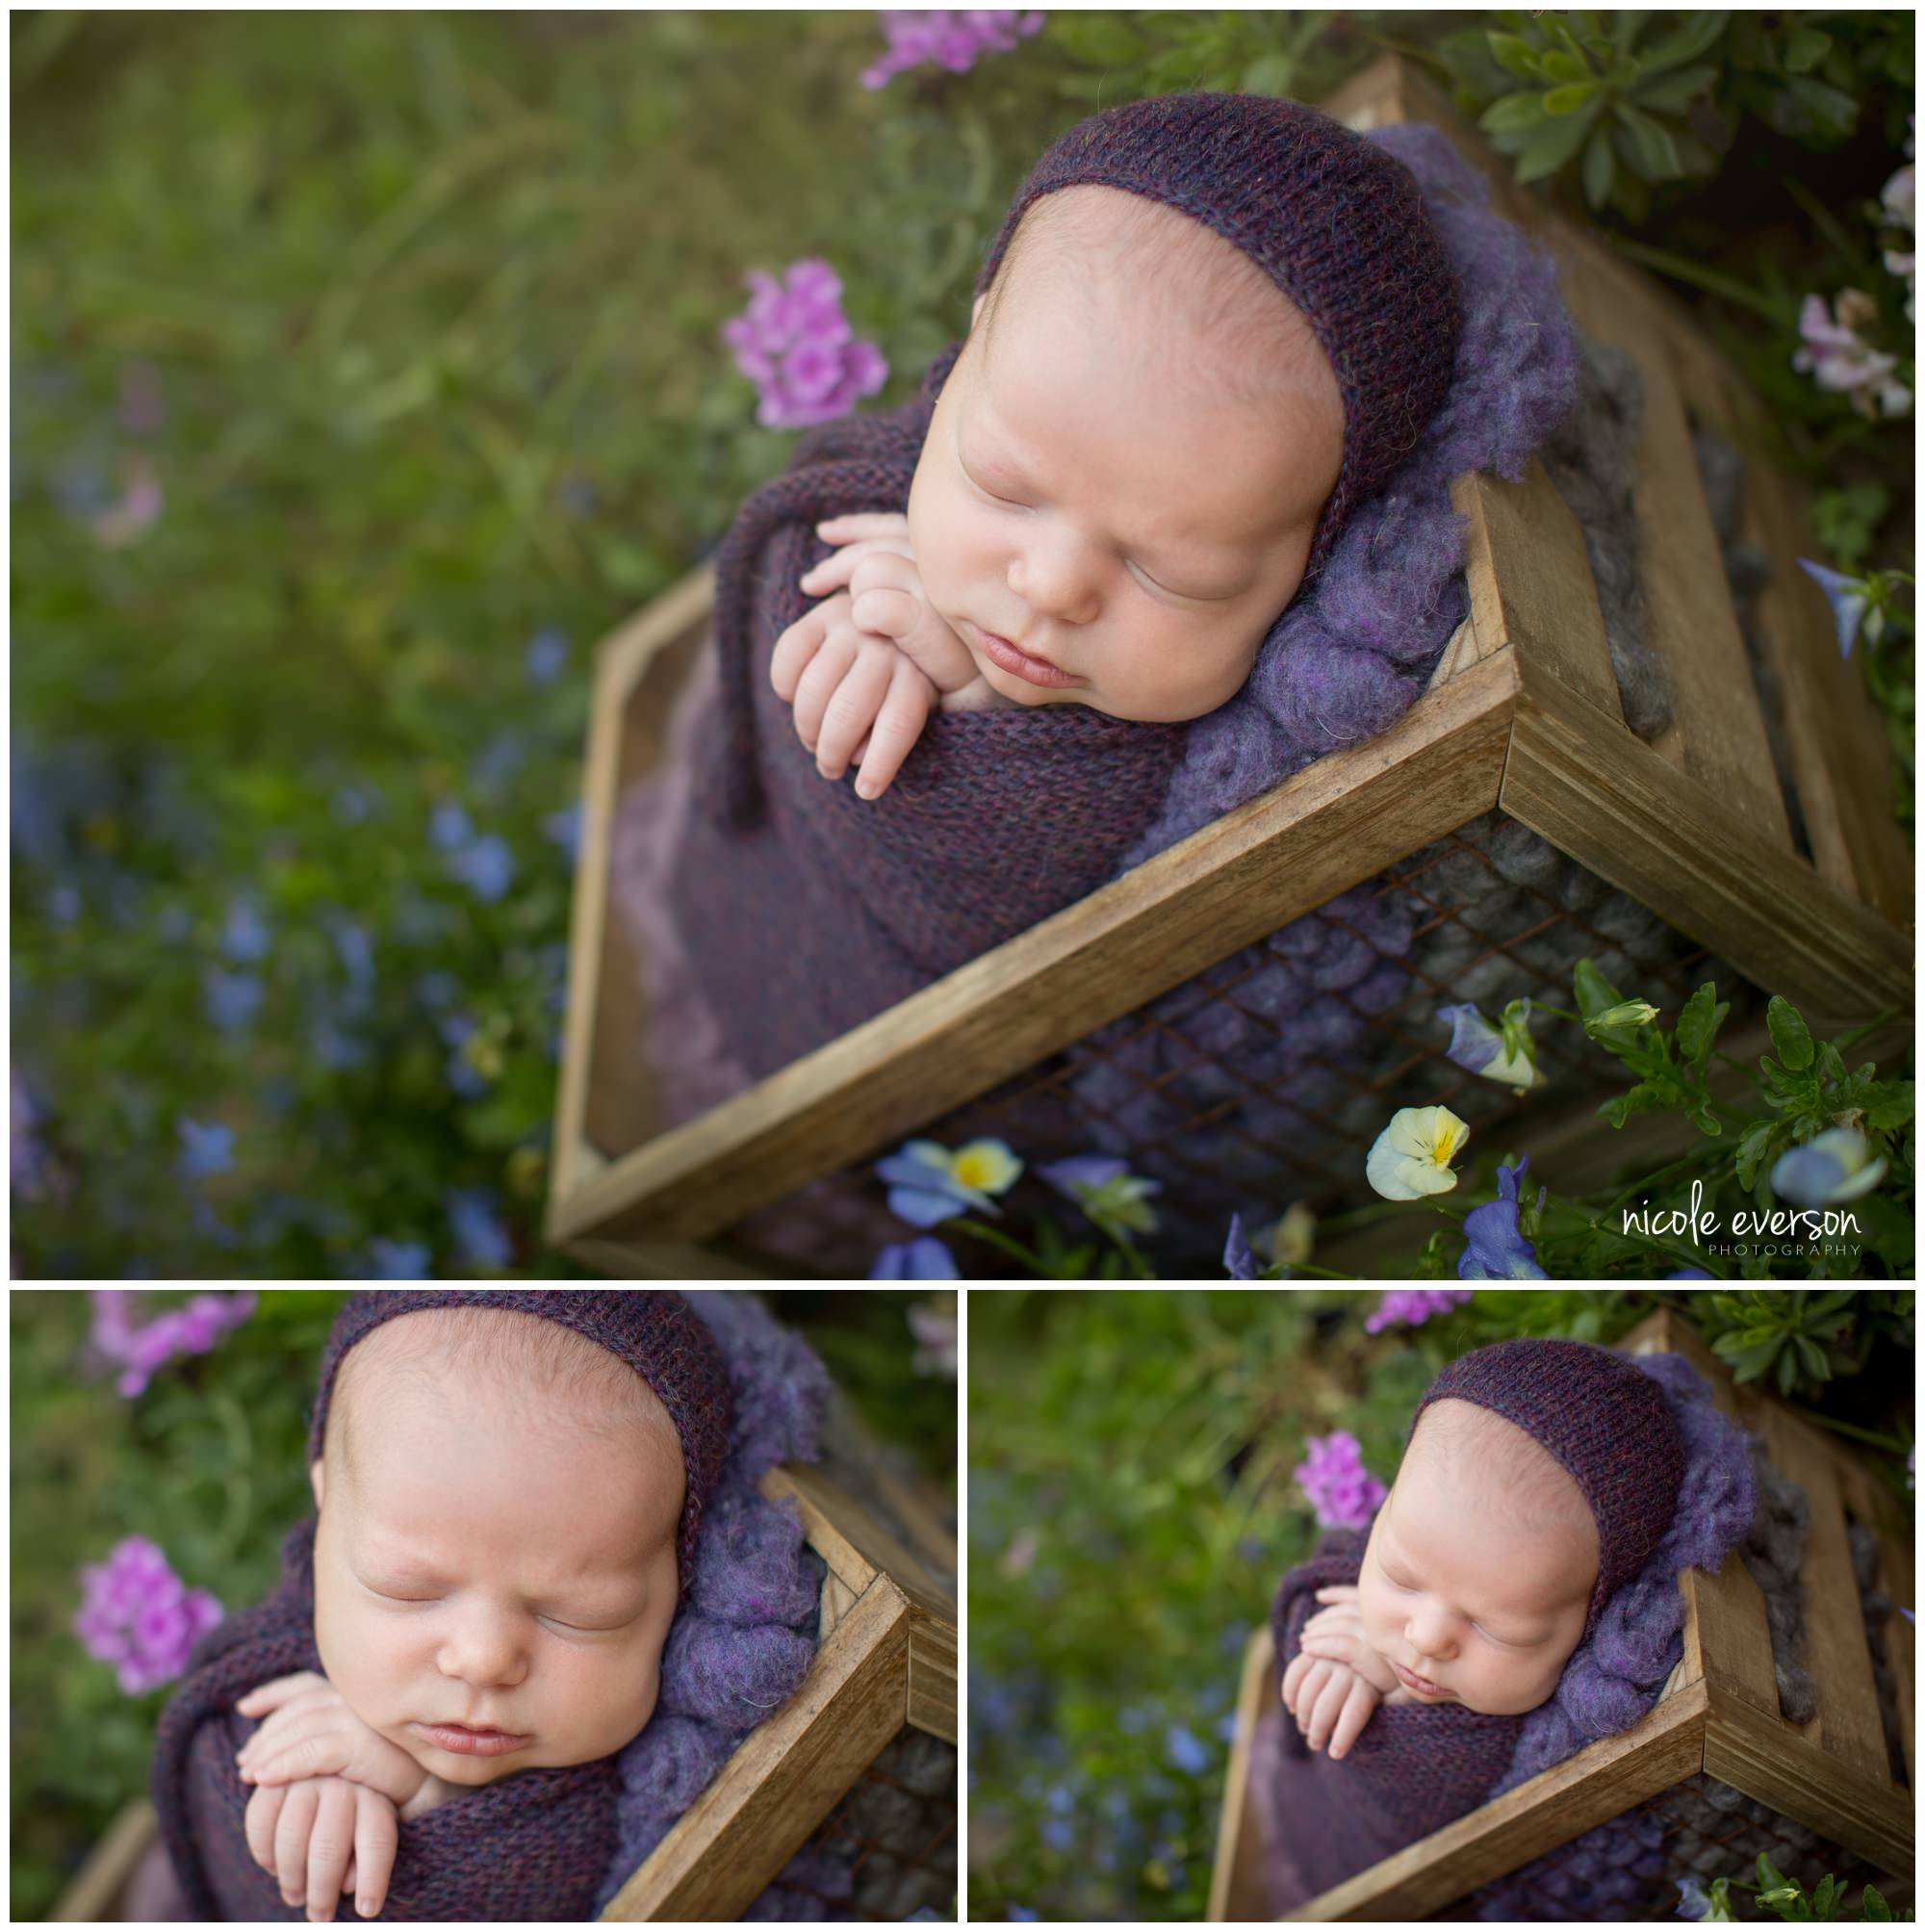 crestview-newborn-photographer-nicole-everson-photography